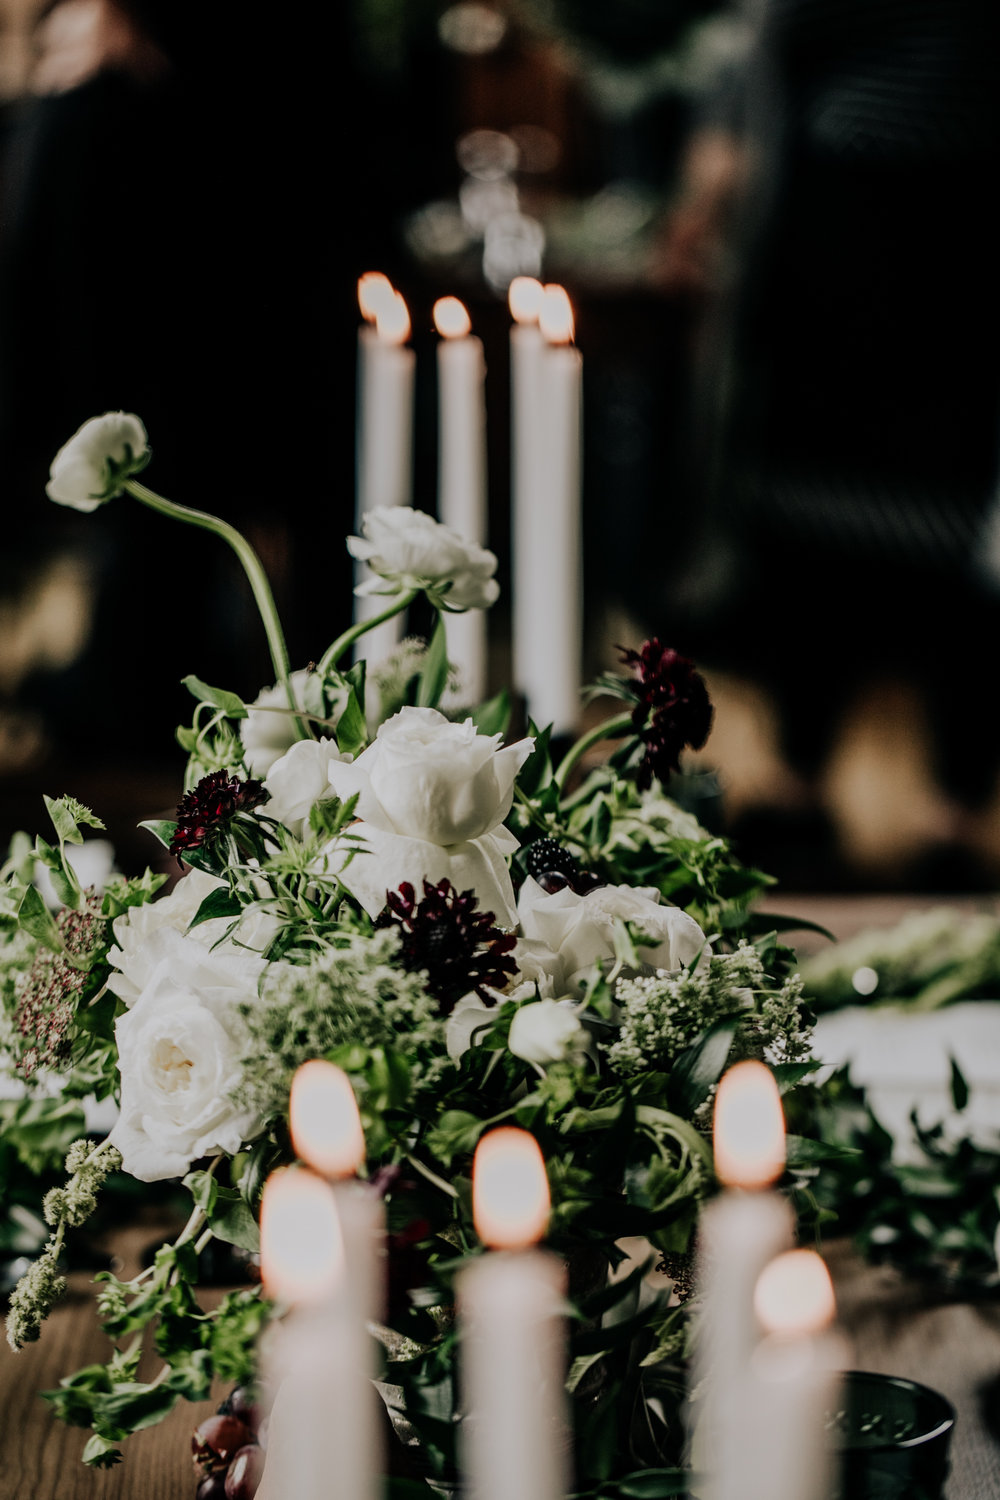 Jennifer Joyce Floral Designs - Greenery & Candles Wedding - Table Decor - Magnolia Market Place settings - Hove Photography